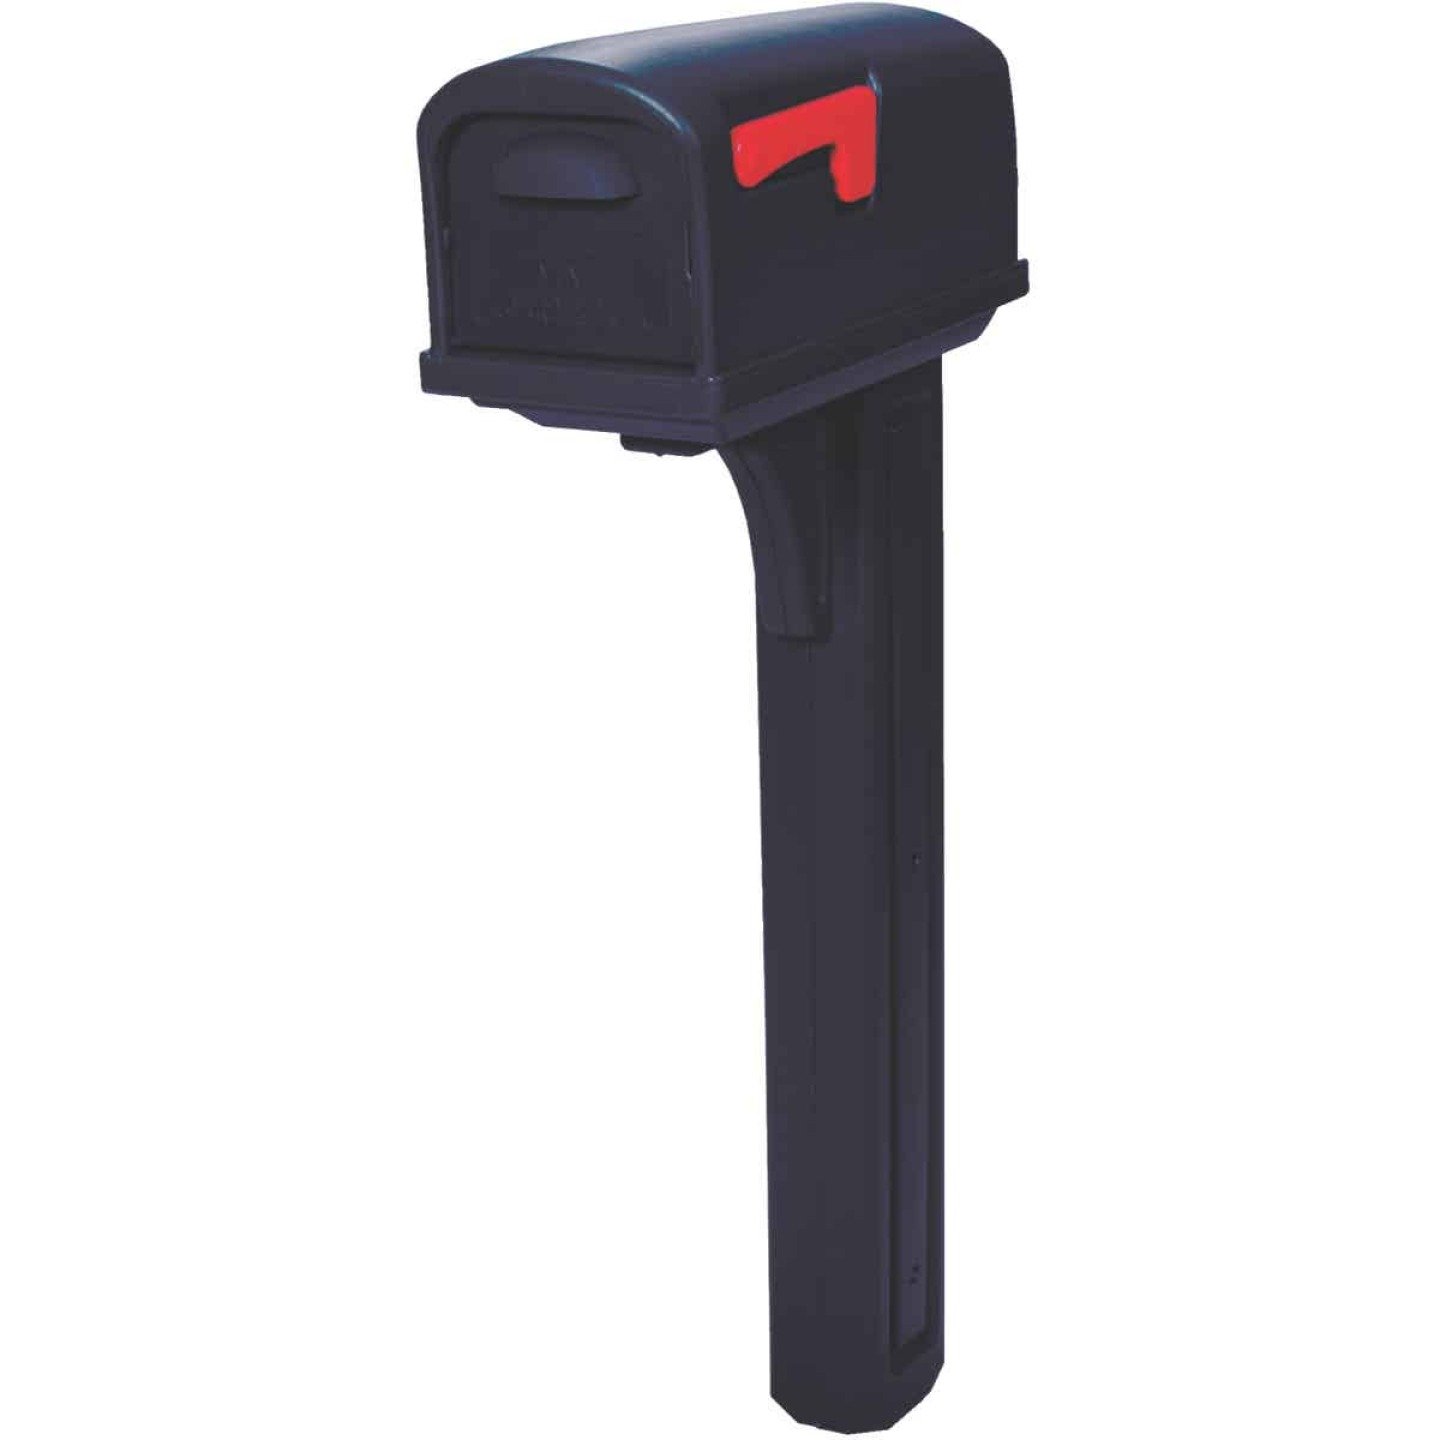 Gibraltar Classic Black Mailbox & Post Image 1